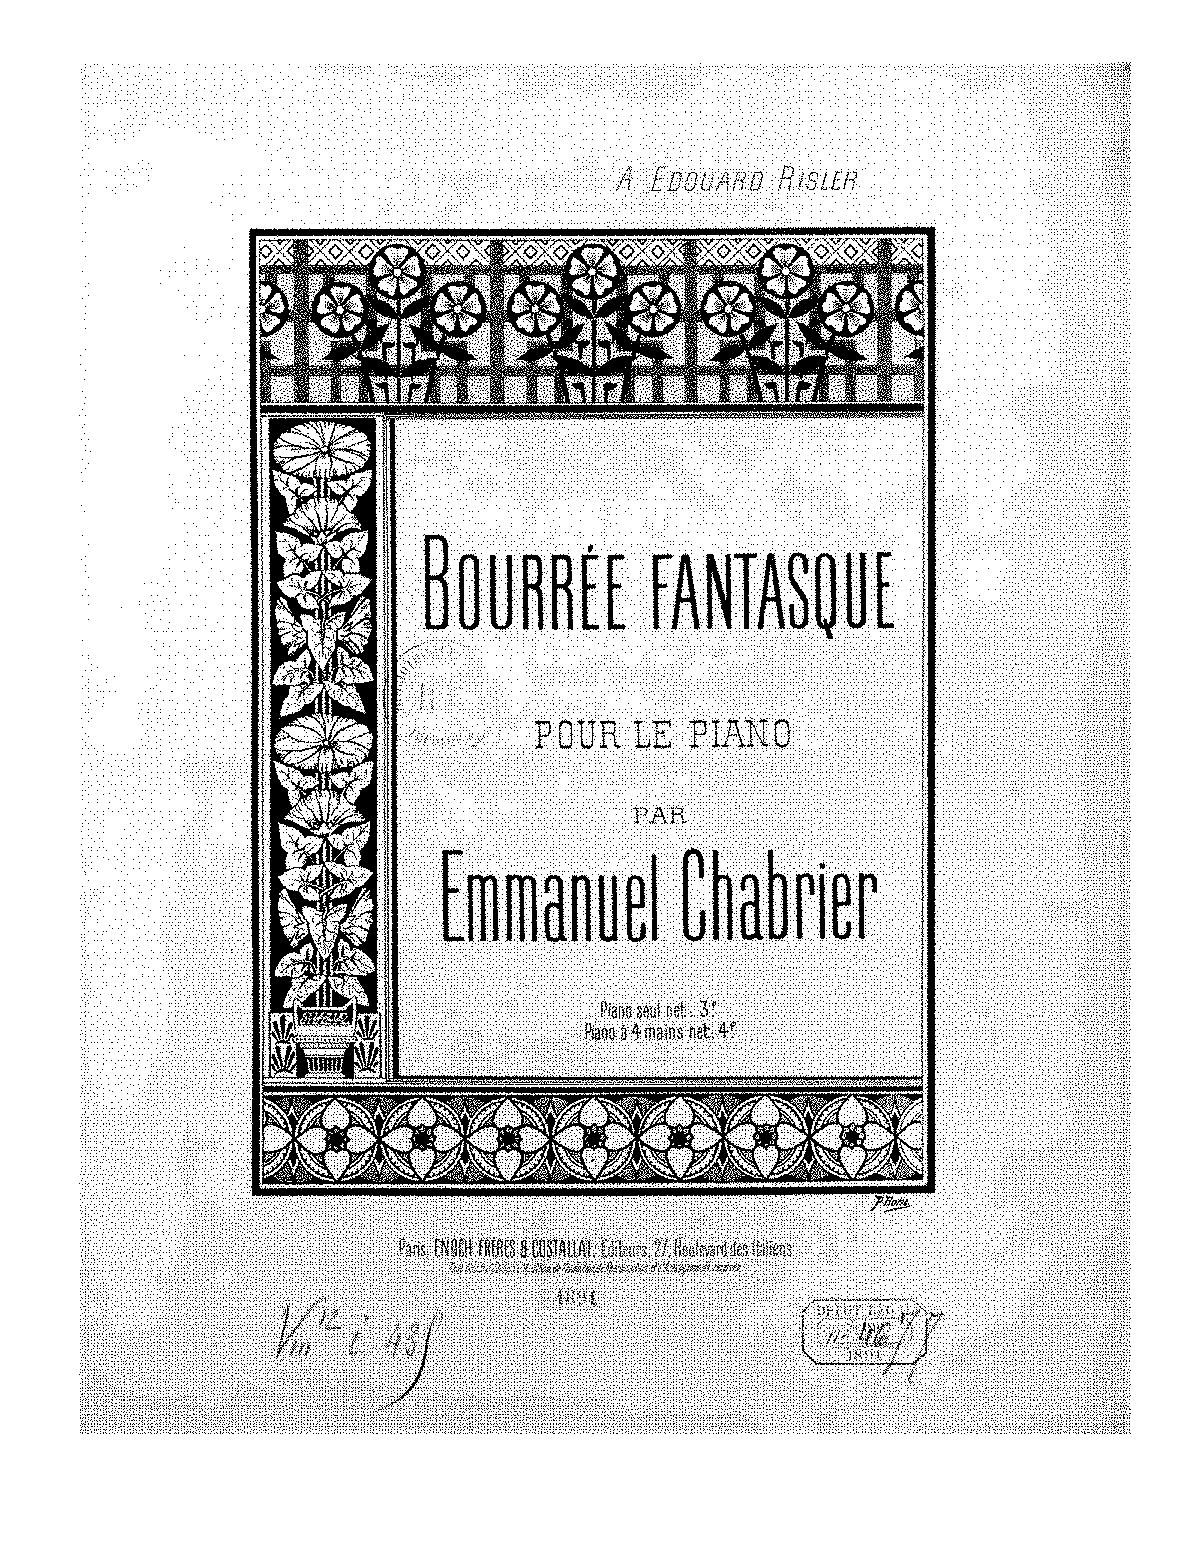 PMLP08694-Chabrier - Bouree fantasque Pf4h bnf.pdf